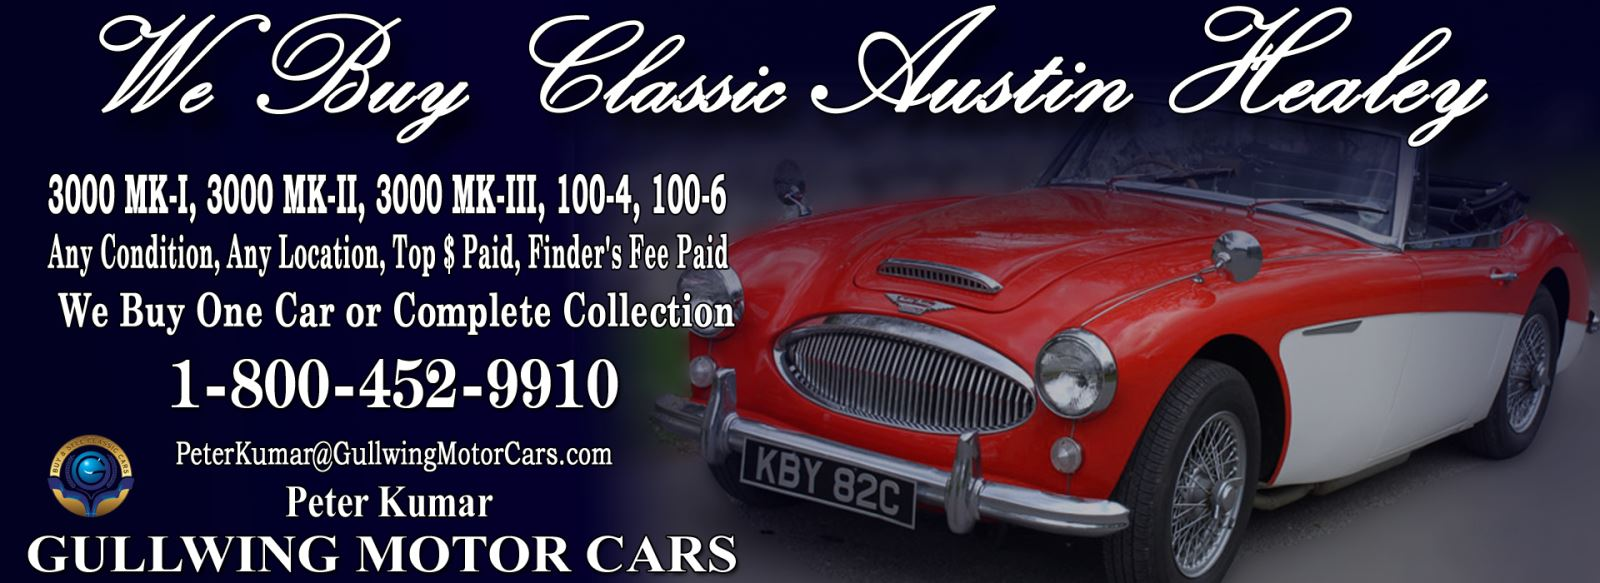 Classic Austin Healey 100-6 for sale, we buy vintage Austin Healey 100-6. Call Peter Kumar. Gullwing Motor